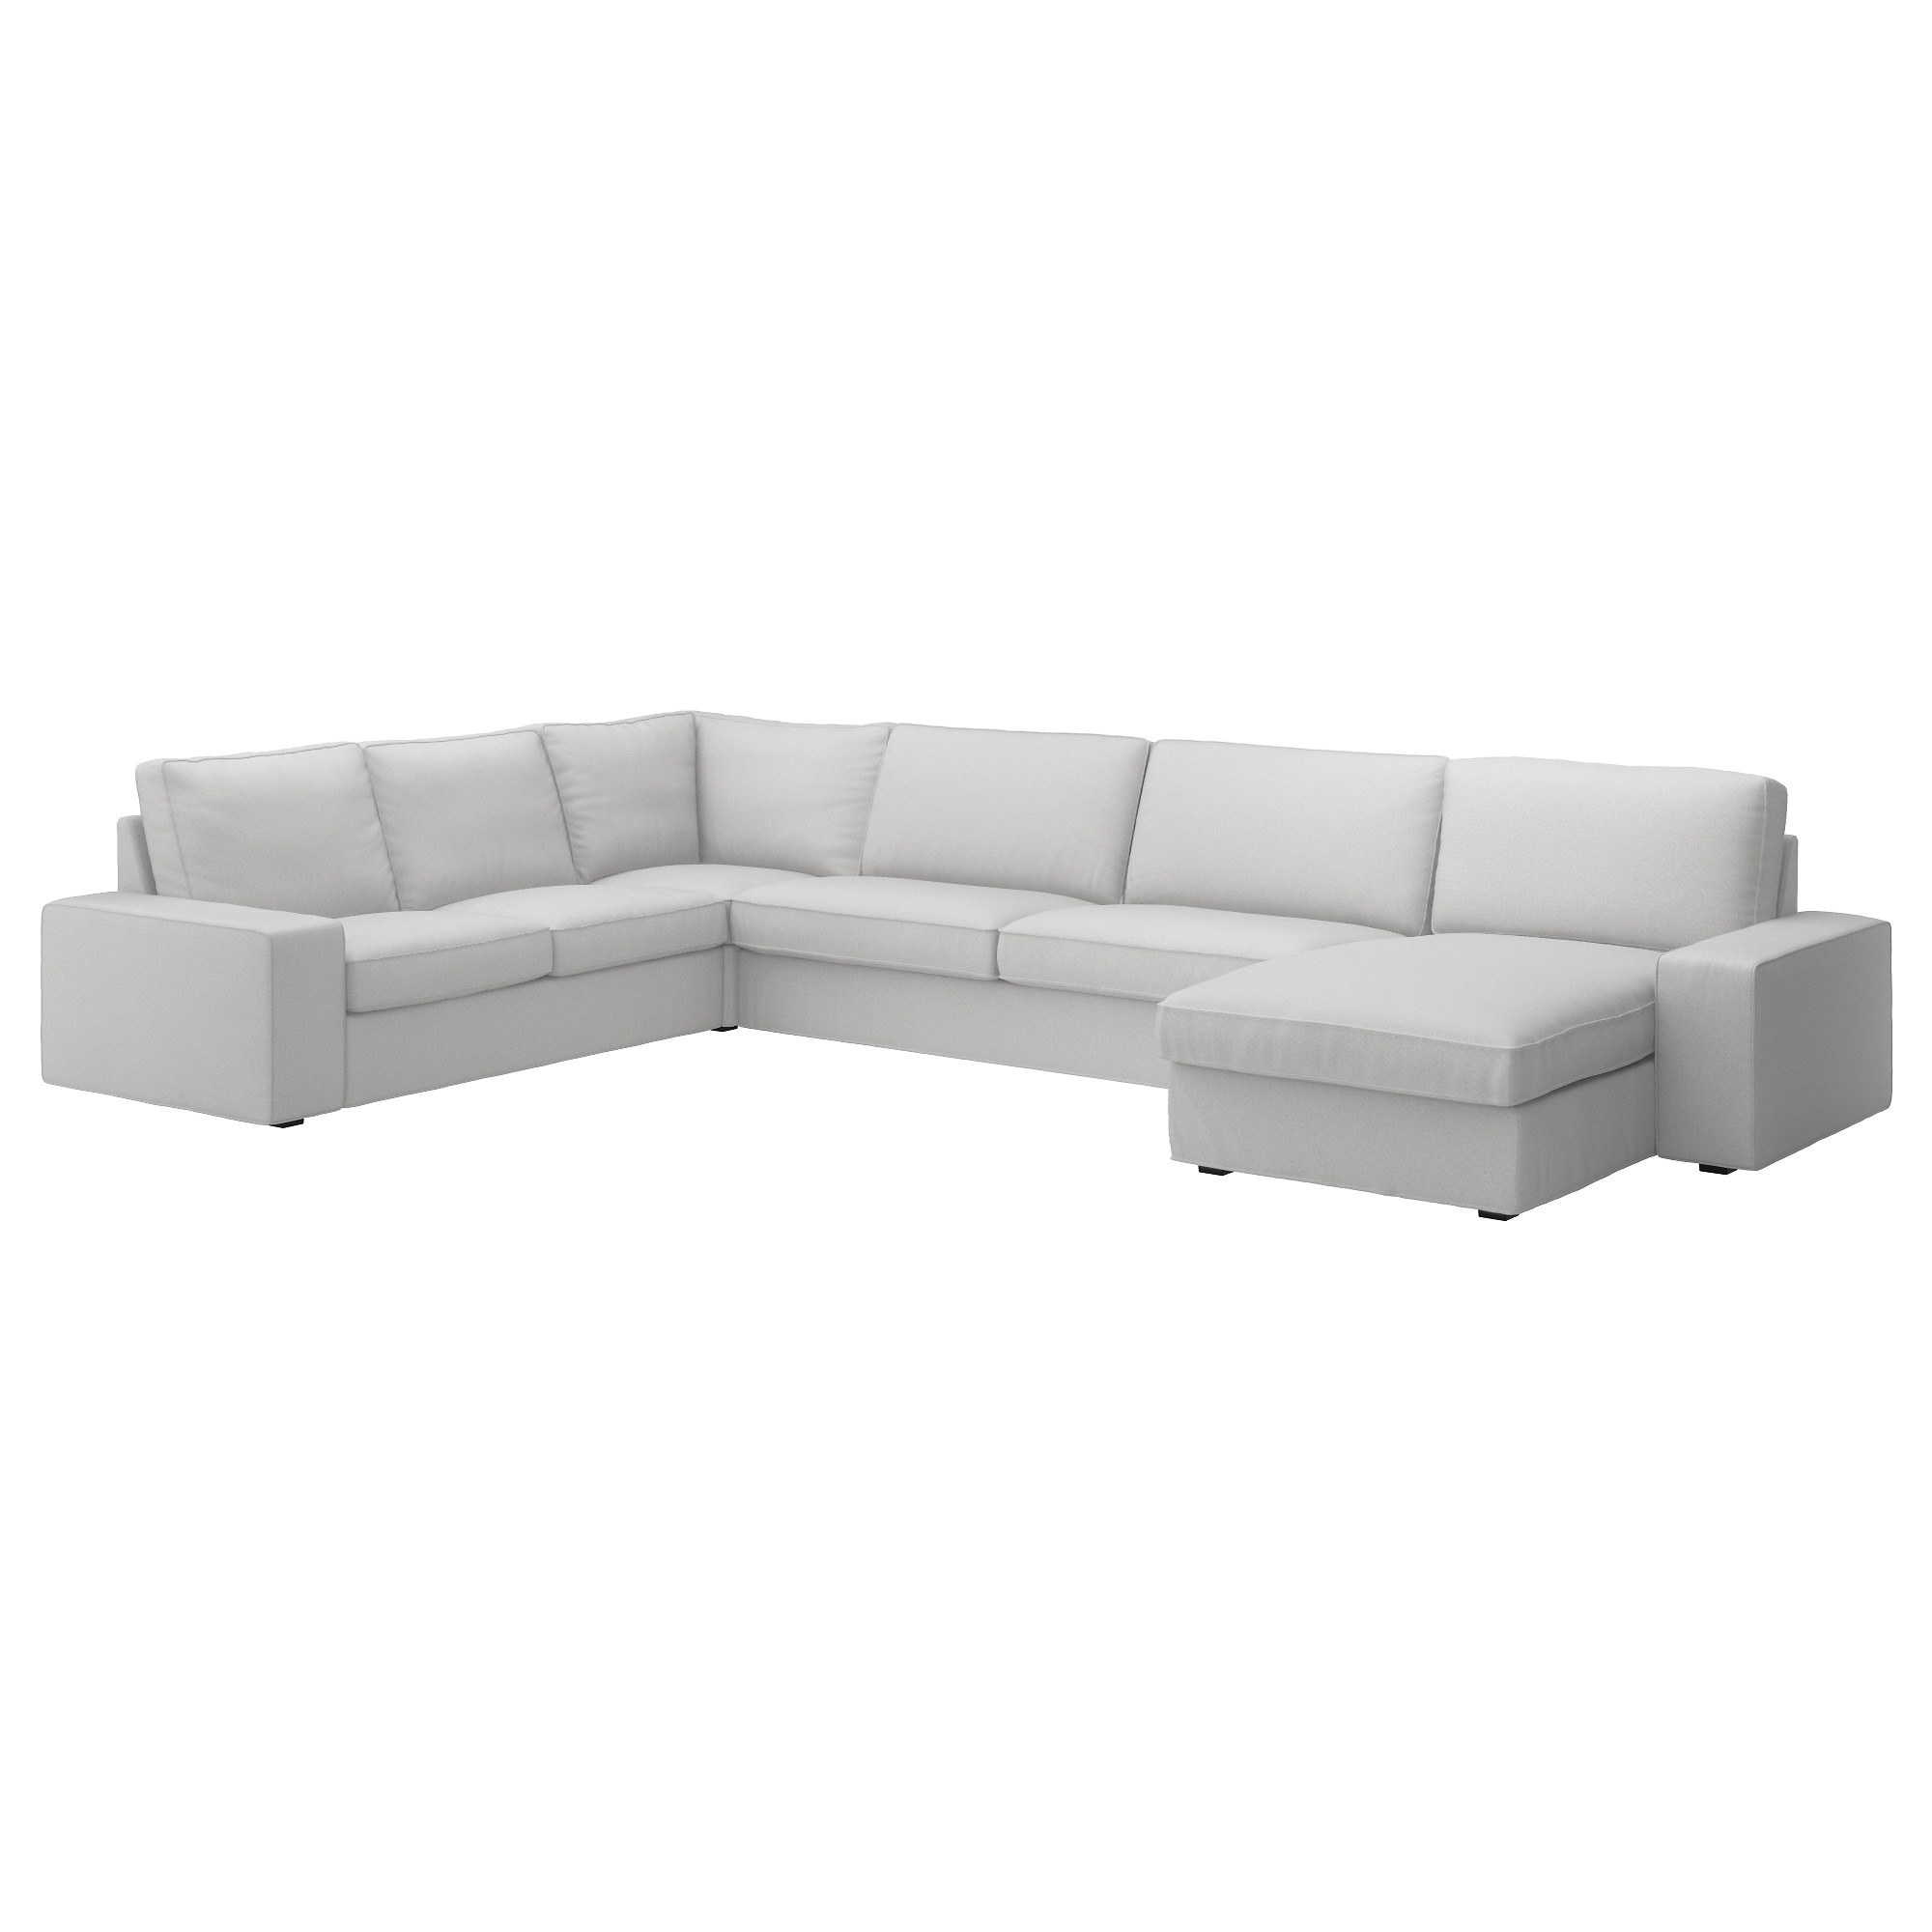 KIVIK Sectional 6 seat corner Orrsta light gray IKEA